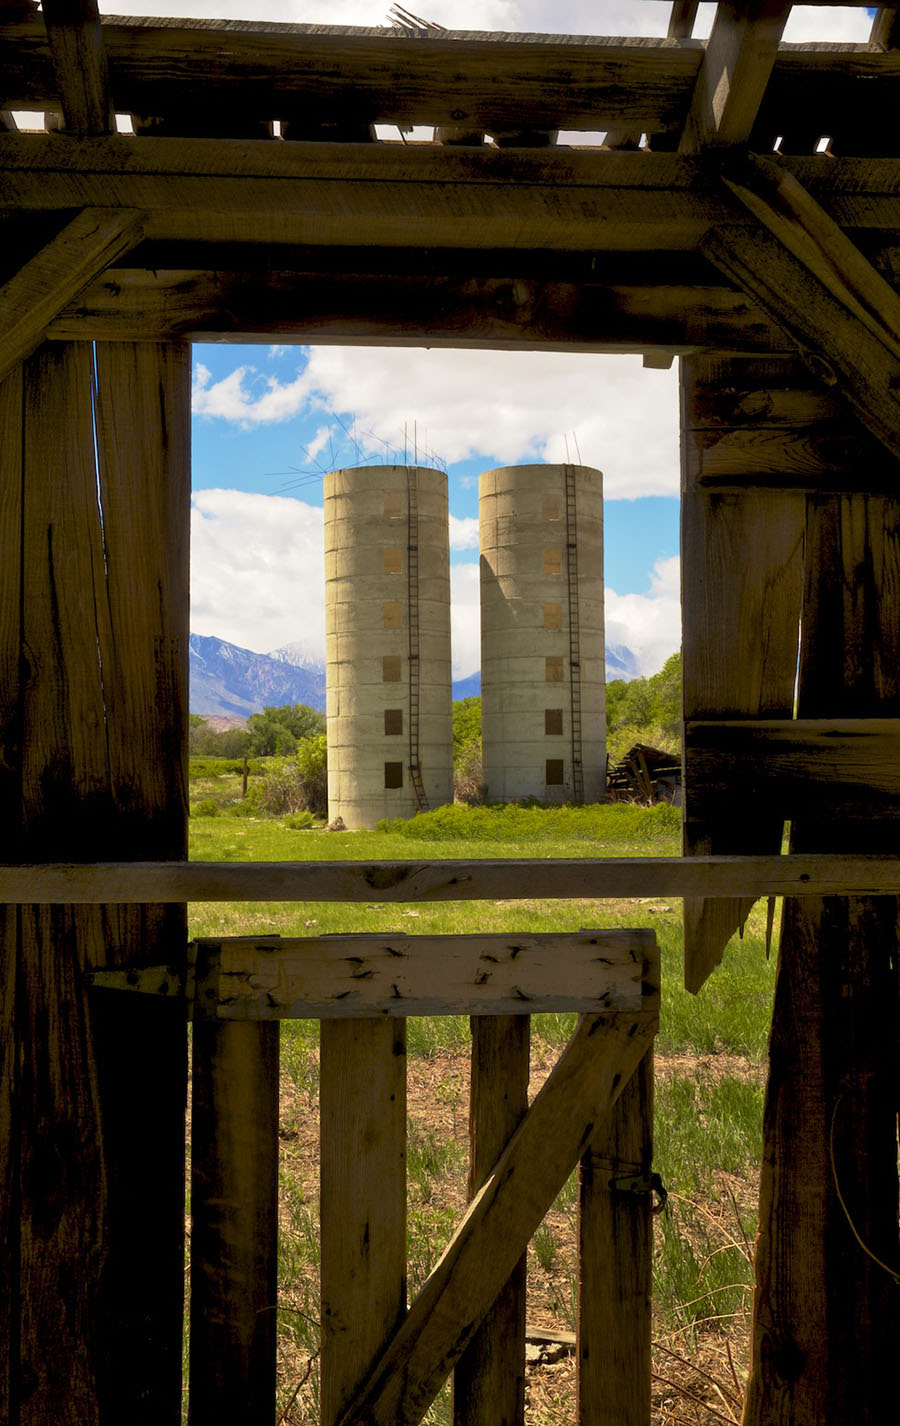 Window View of Twin Silos from Abandoned Barn - Bishop, CA - 2016 | Osceola Refetoff